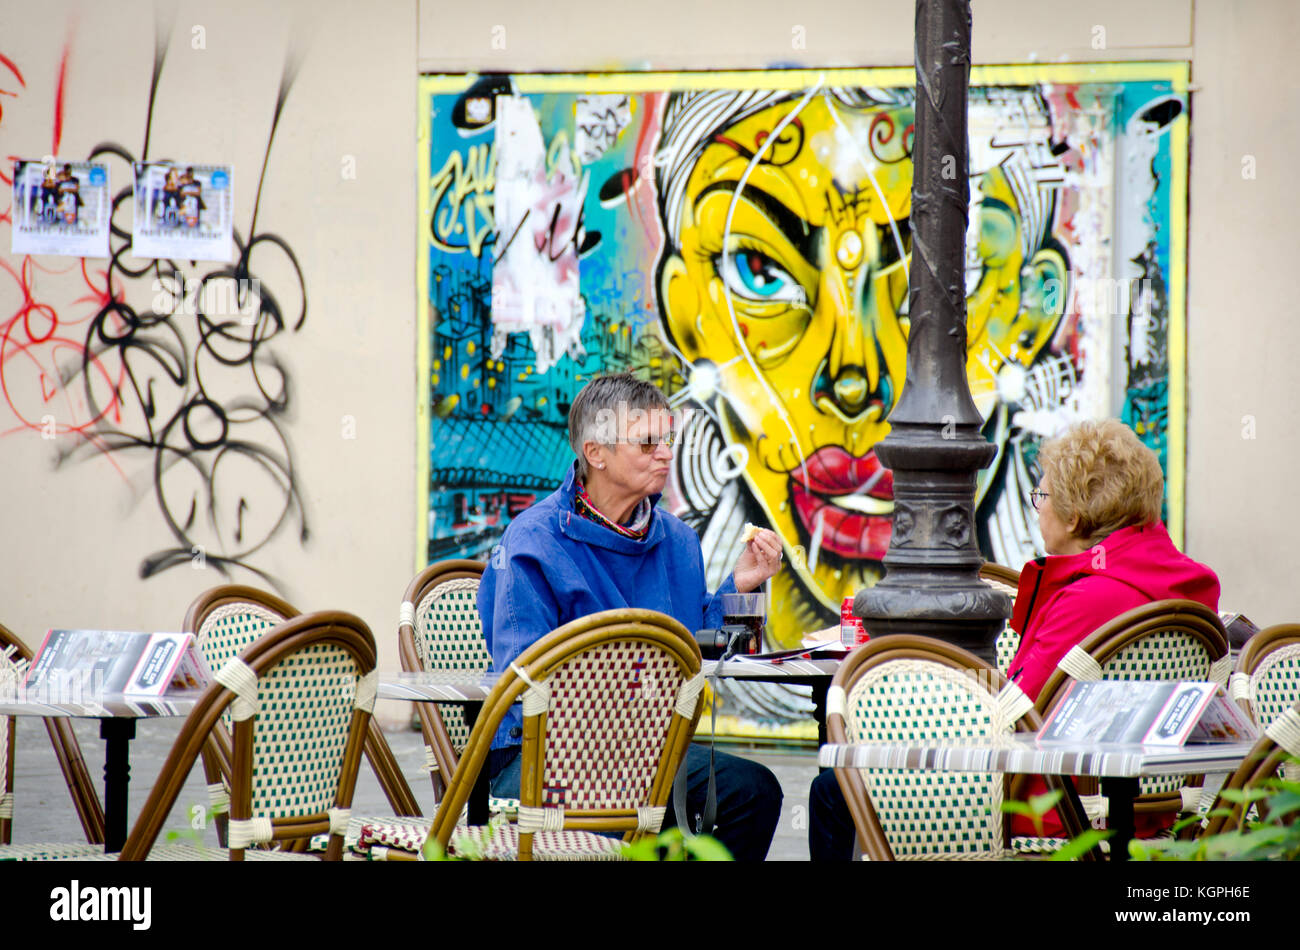 Paris, France. Two women sitting at a cafe table in Place Edmond Michelet with graffiti behind - Stock Image